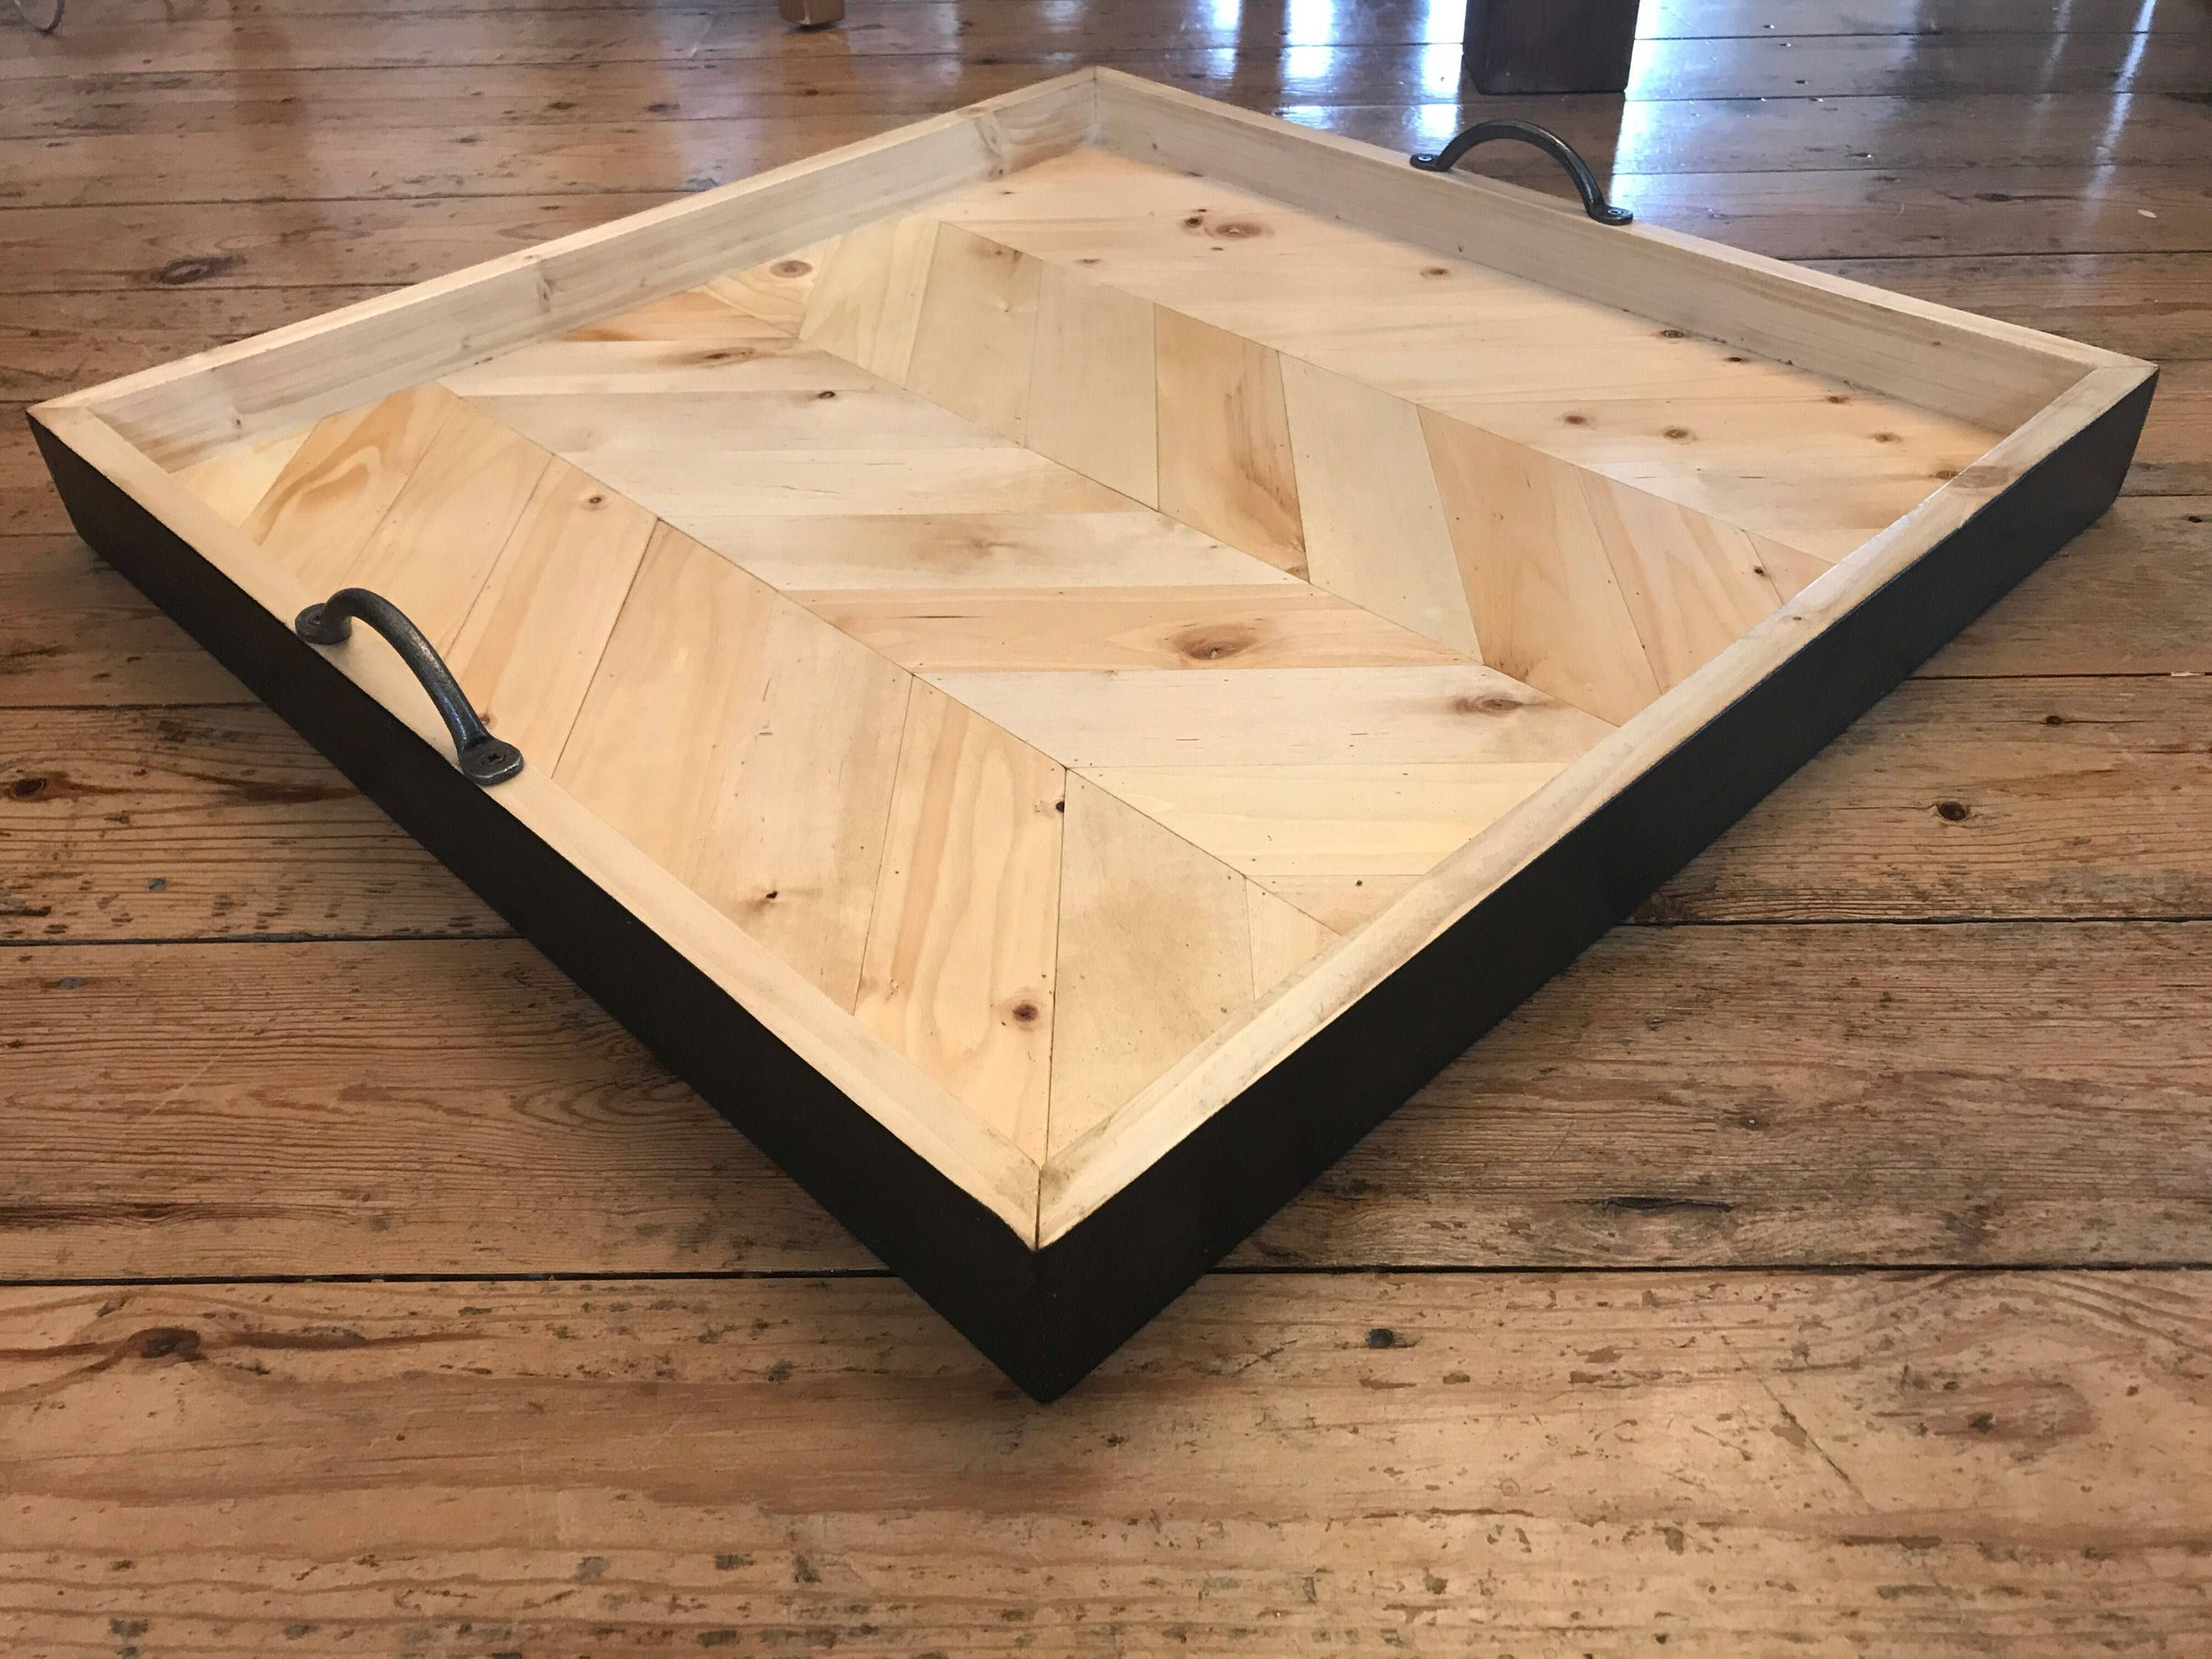 Trays Serving Trays Wood Serving Trays Coffee Serving Trays Coffee Trays Wood Coffee Trays Wooden Cof Ottoman Tray Wooden Ottoman Tray Large Ottoman Tray [ 2250 x 3000 Pixel ]